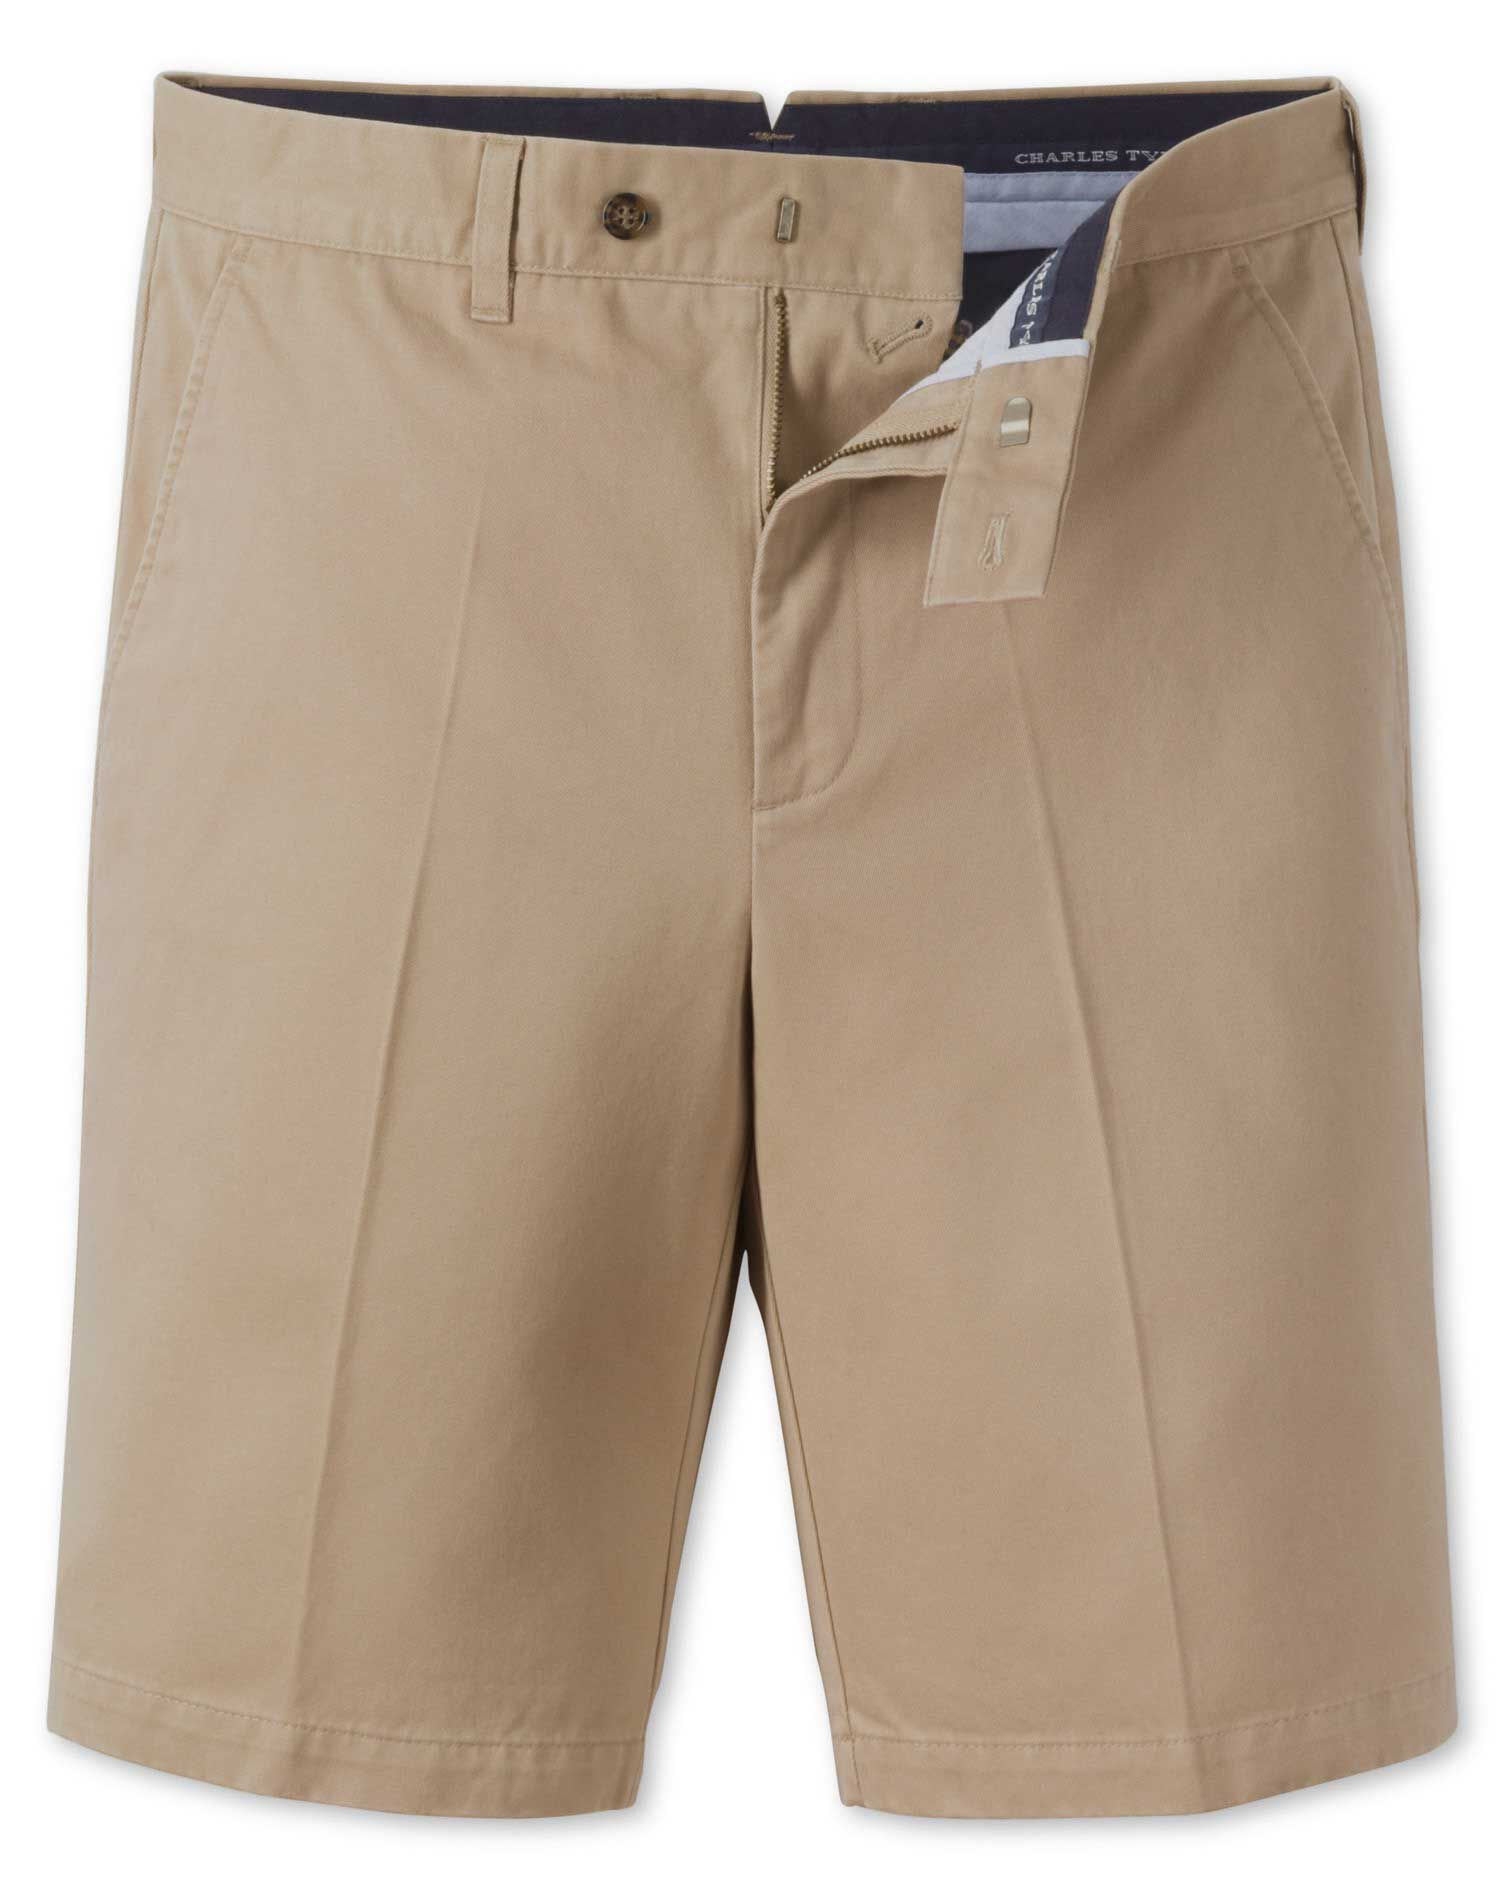 Stone Single Pleat Chino Cotton Shorts Size 30 by Charles Tyrwhitt